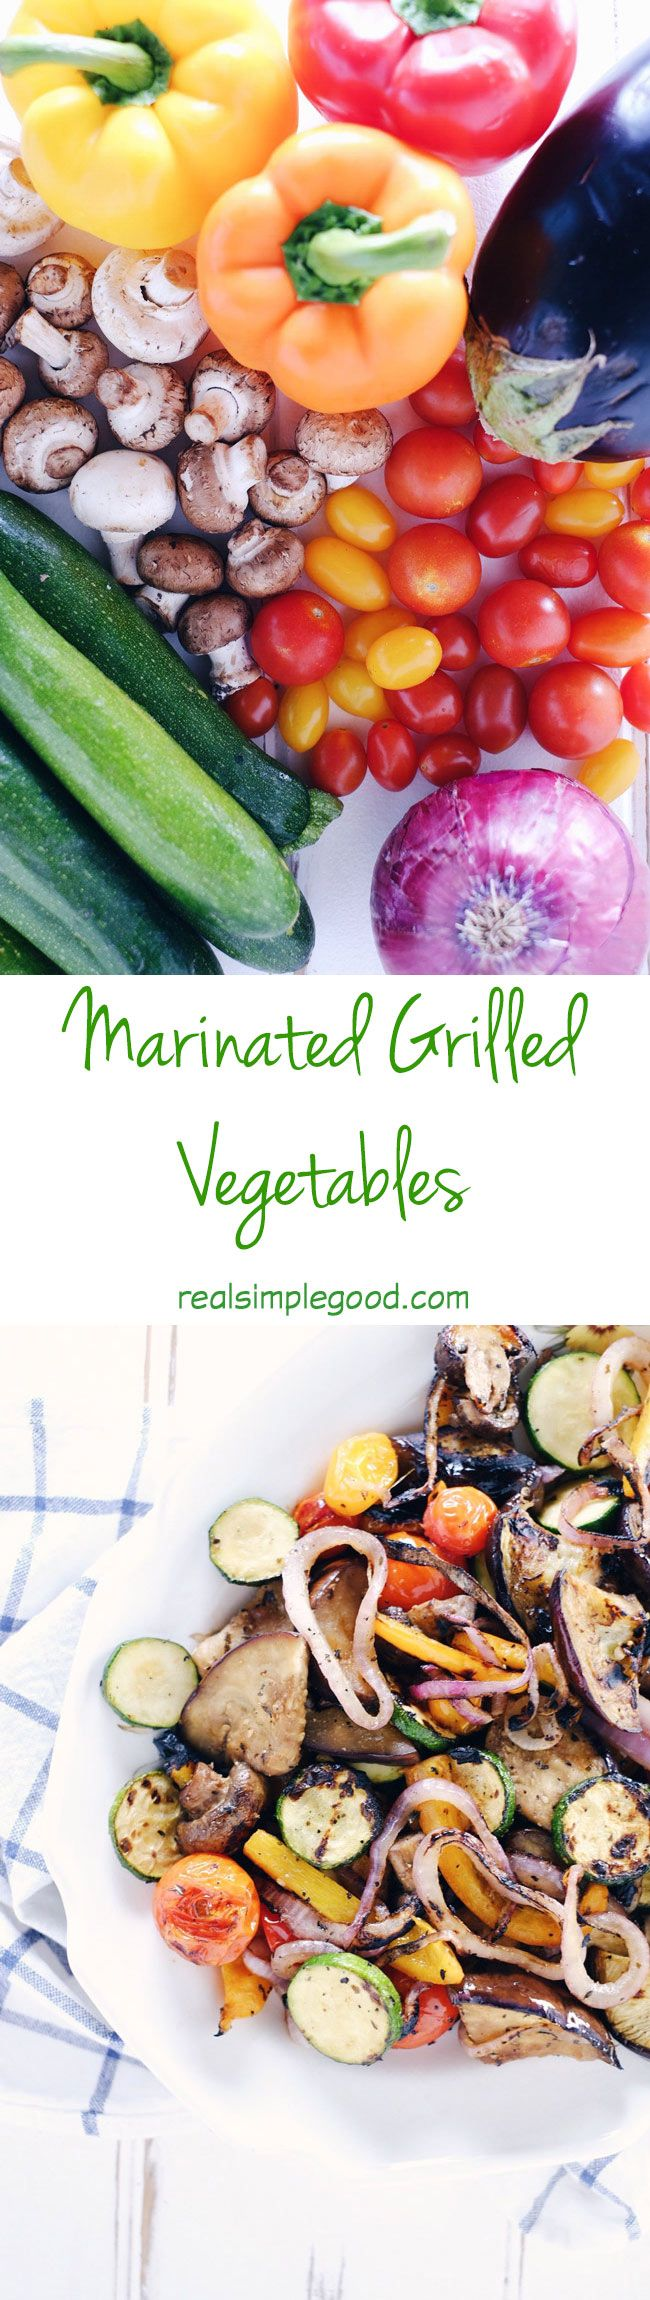 These marinated grilled vegetables are packed with tons of flavor and are perfect as a healthy side dish to any meal. Bell peppers, tomatoes, mushrooms, eggplant, zucchini and onion are easy to grill and everyone will love them! | realsimplegood.com